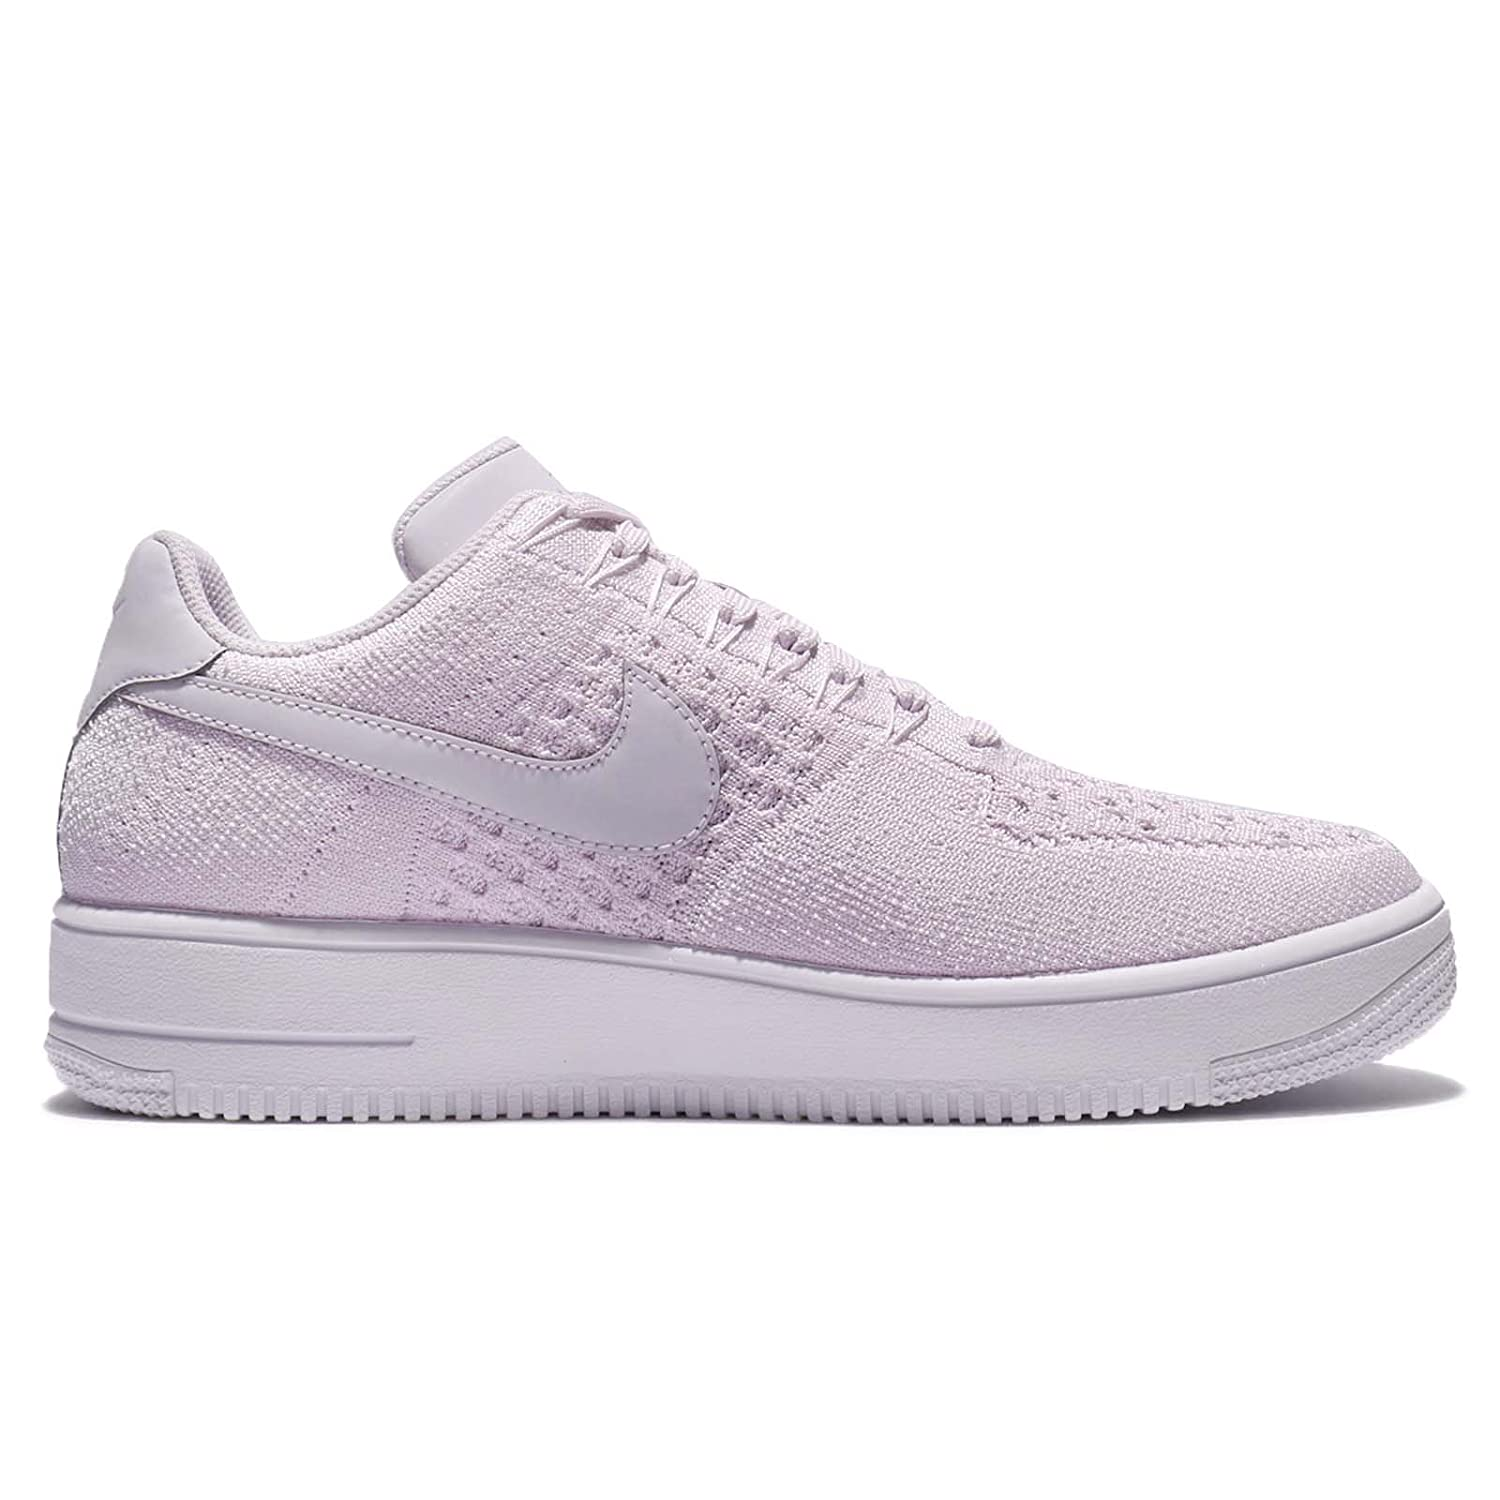 finest selection 1b138 d11f0 Nike Men s Air Force 1 Ultra Flyknit Low Shoes Light Violet  Buy Online at Low  Prices in India - Amazon.in